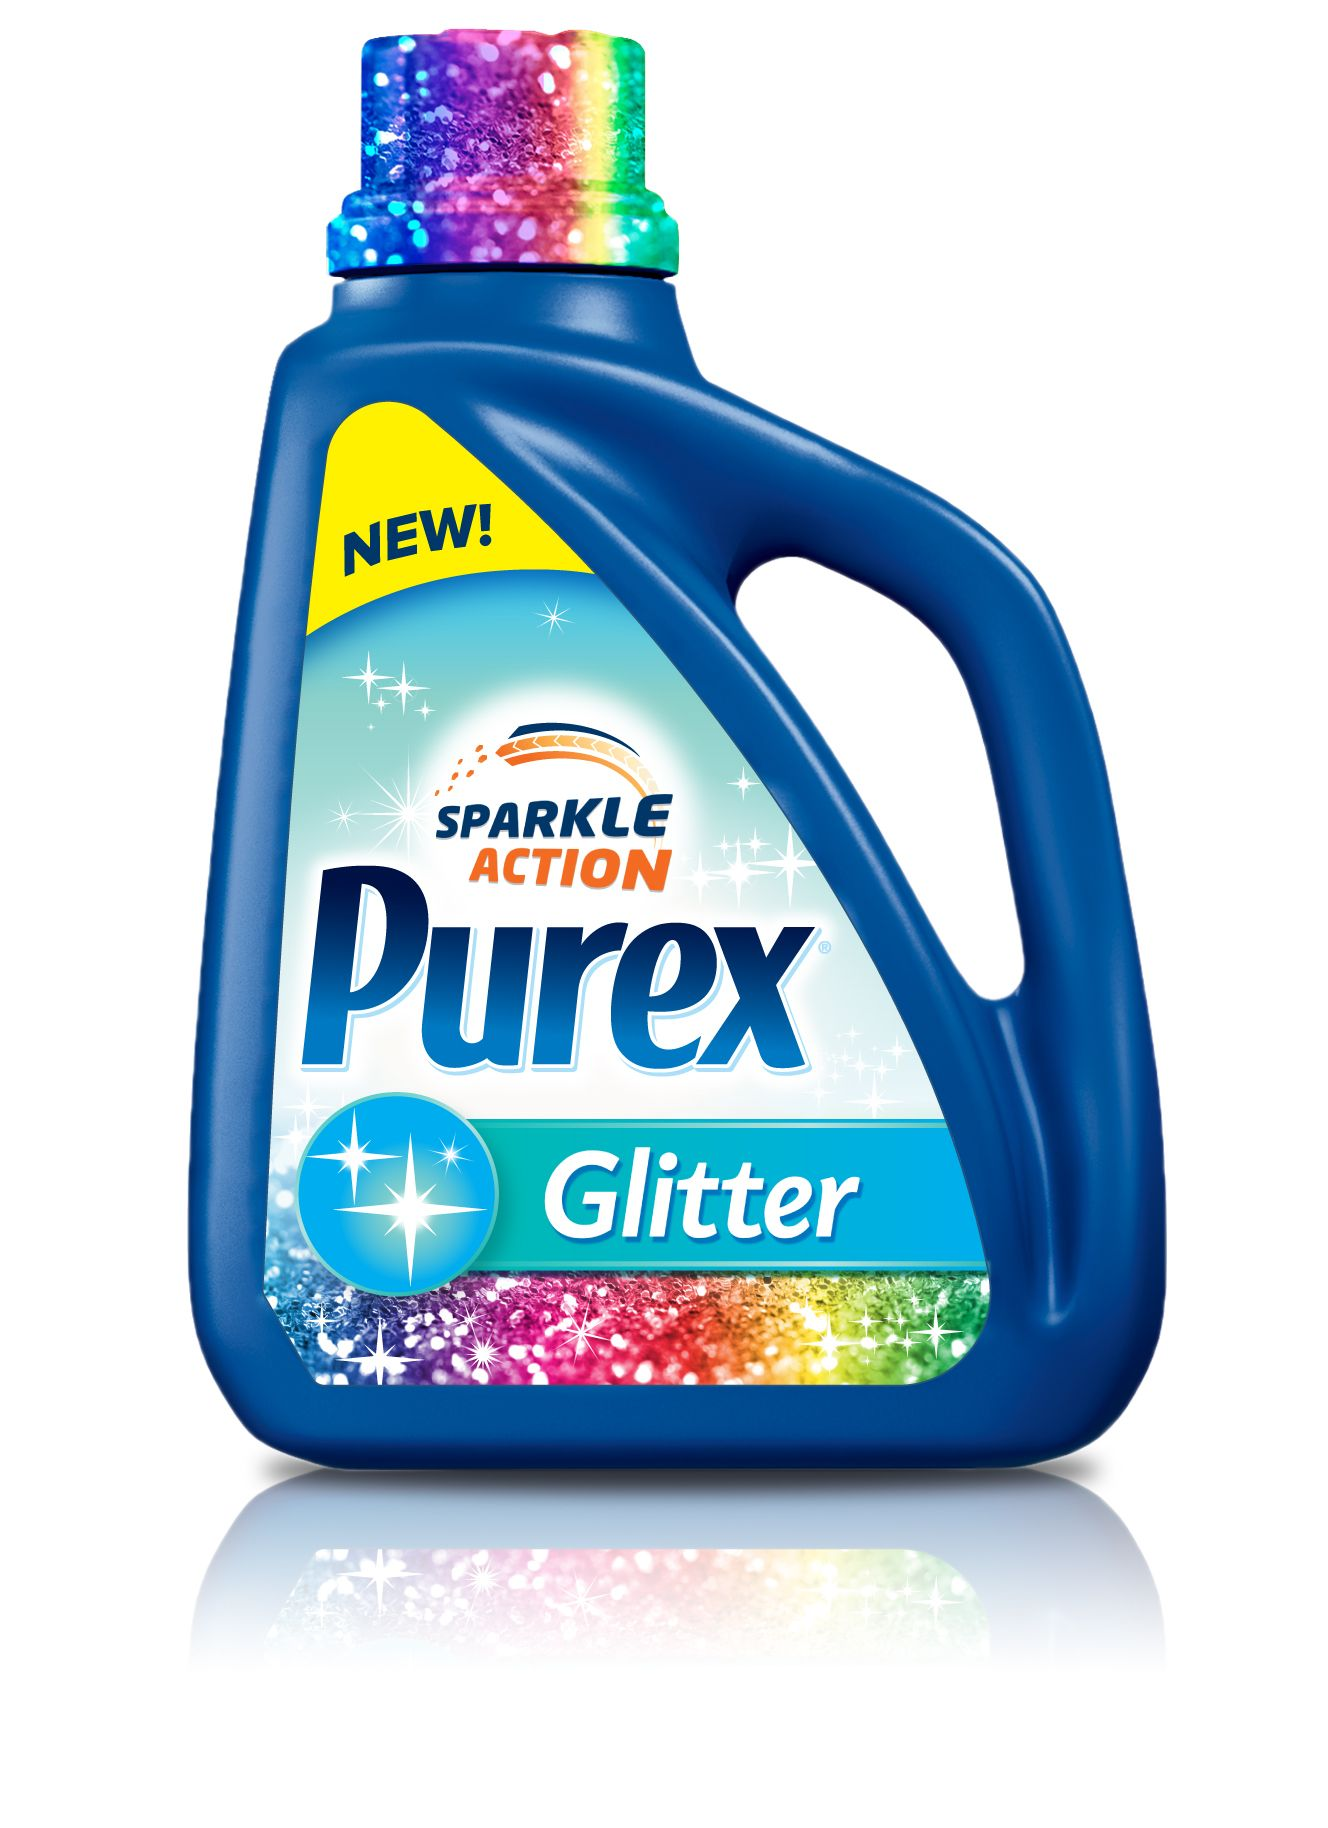 Introducing New Purex Glitter Detergent Purexinsiders